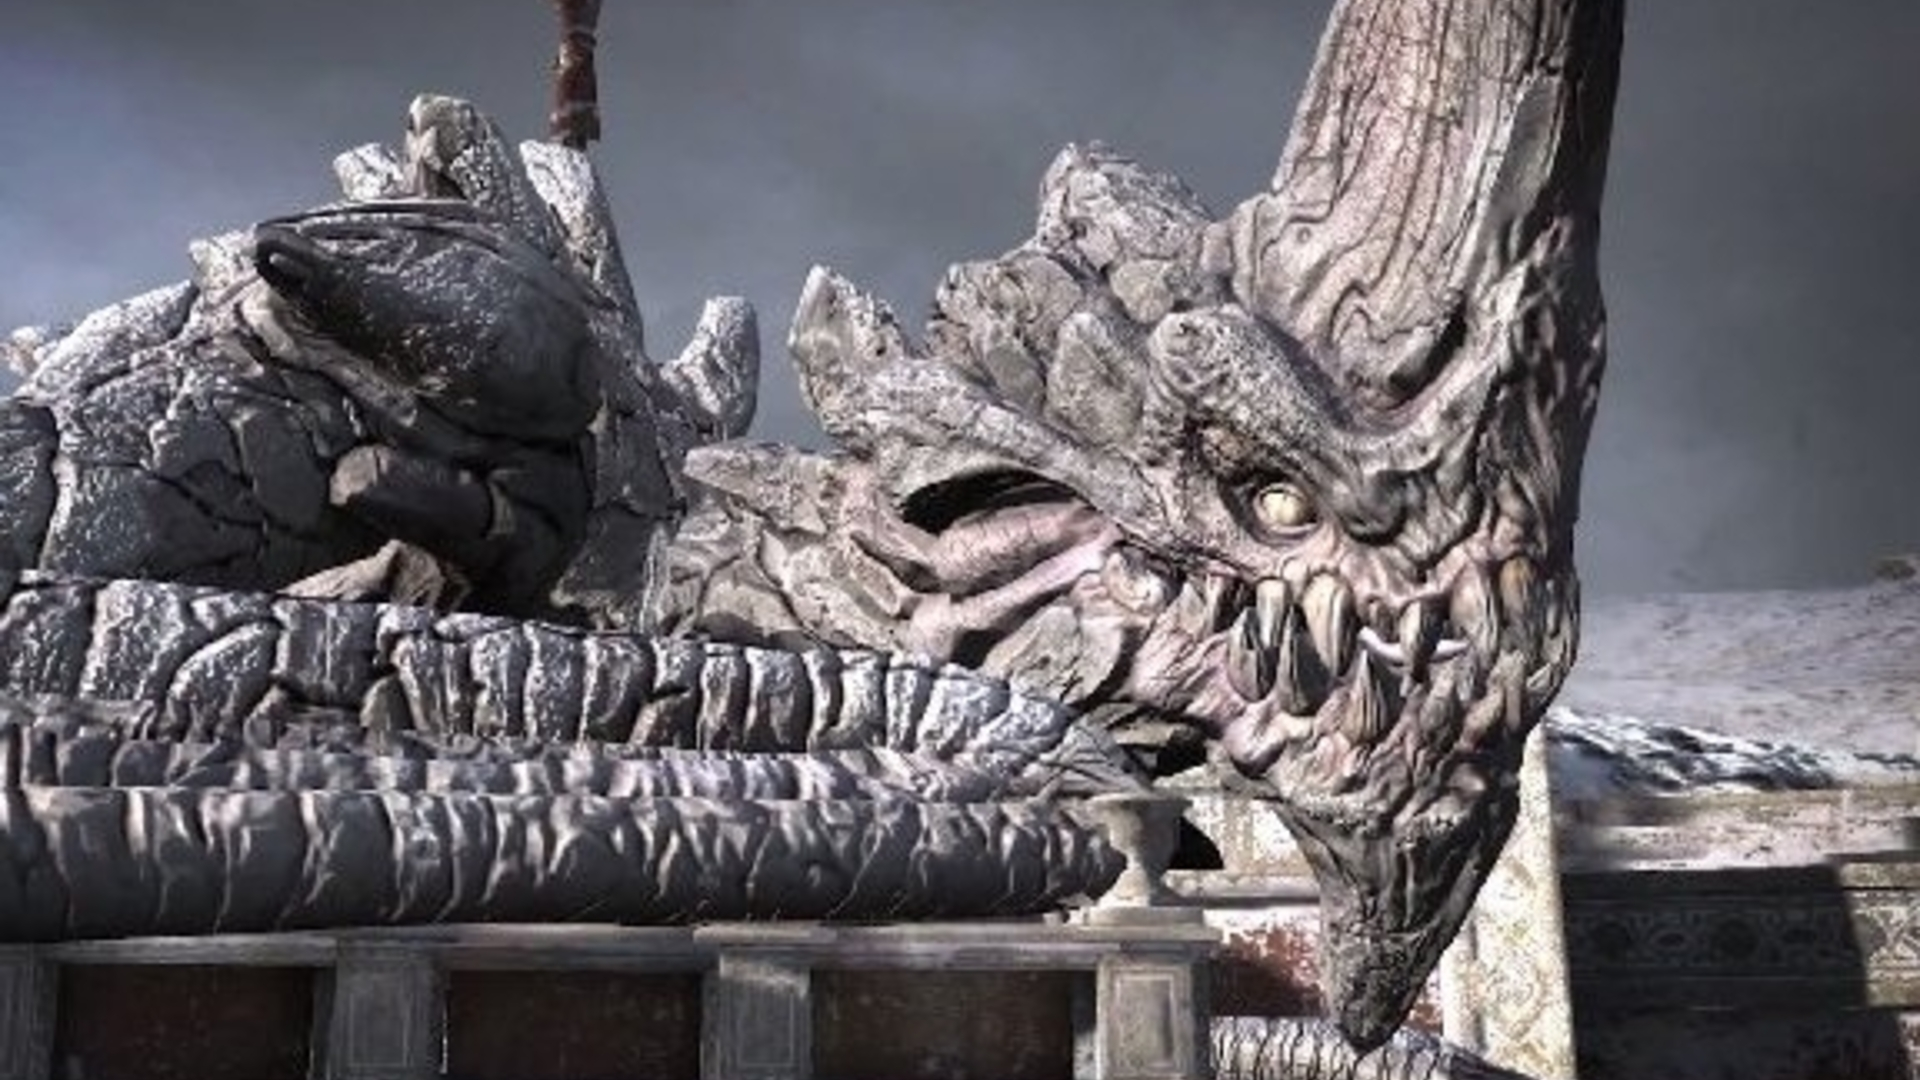 Infinity Blade series concludes next week